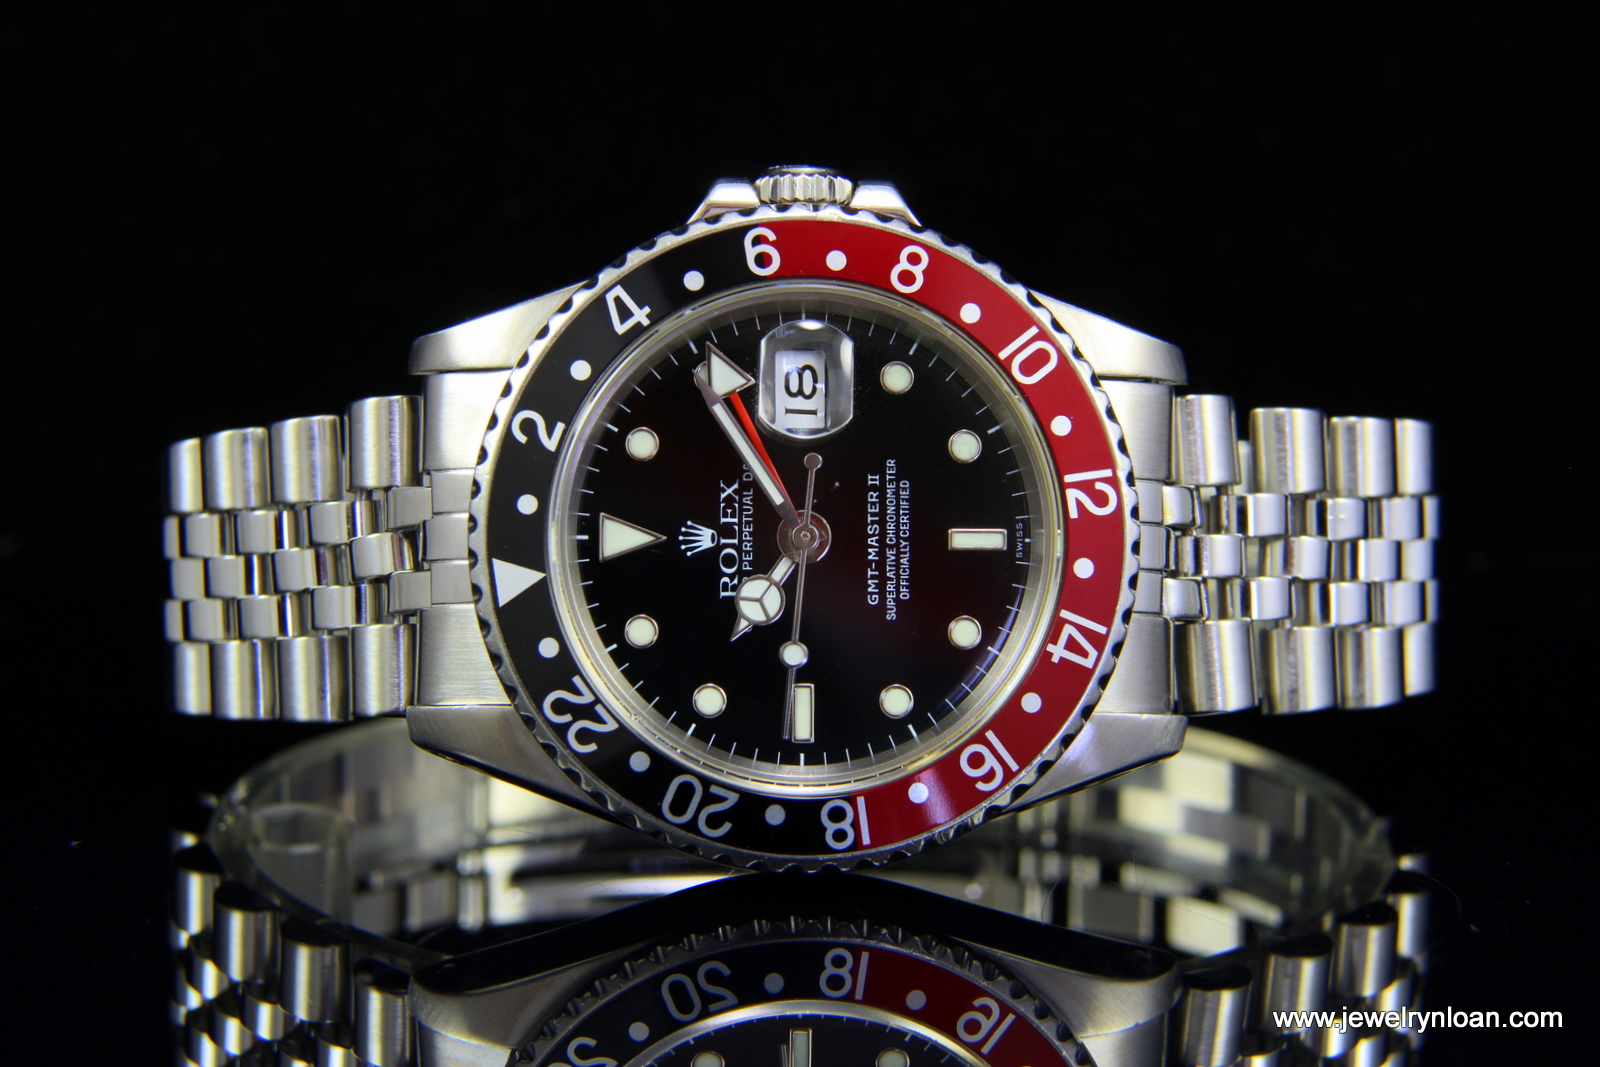 Caring For Your Rolex - Simple Tips To Improve Rolex Time Accuracy